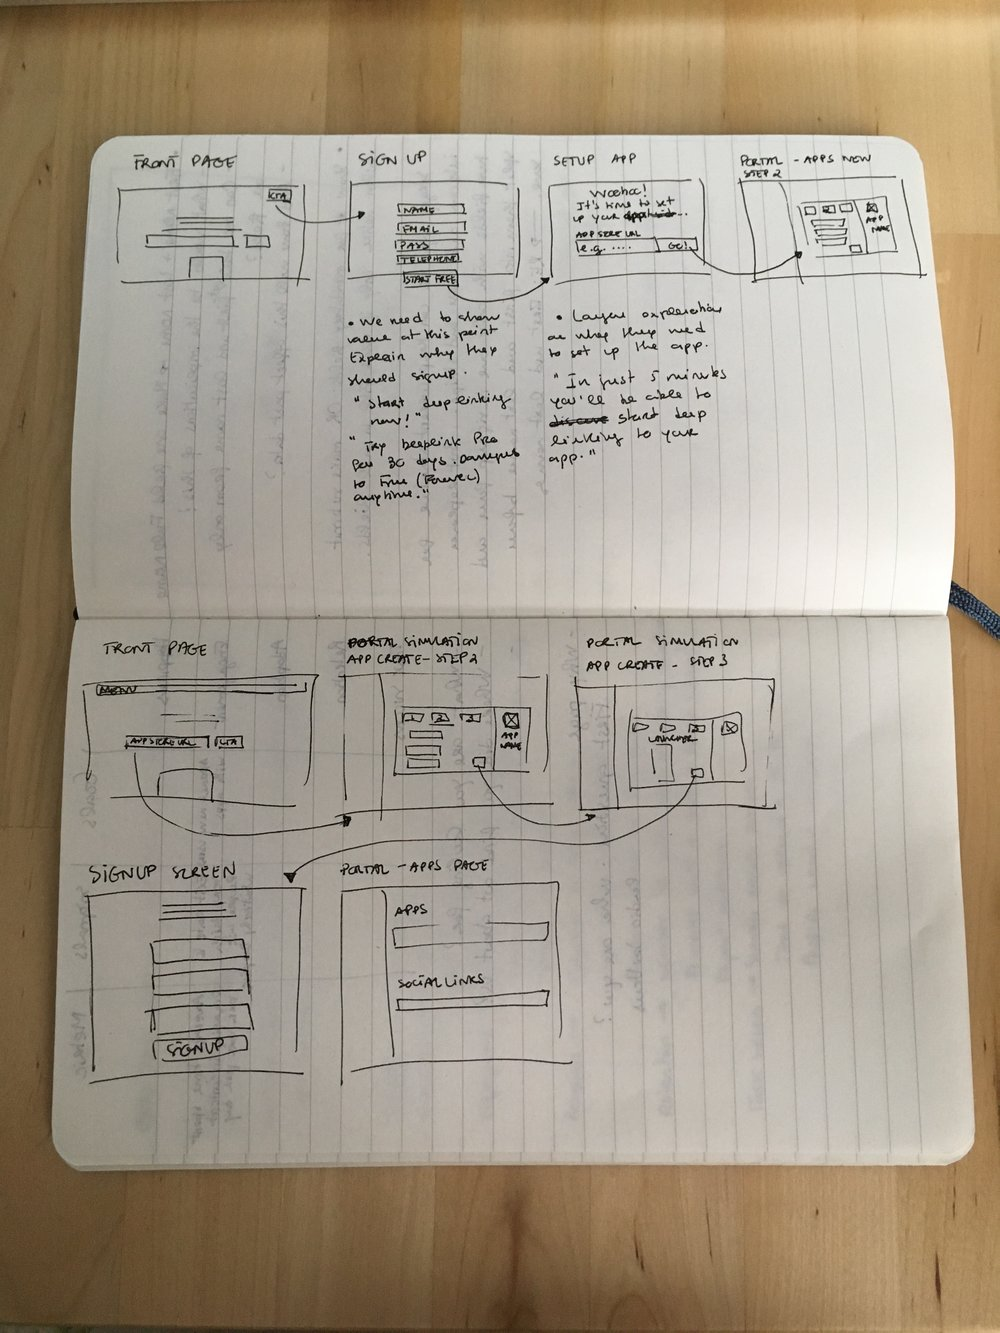 Sketching onboarding flow ideas.